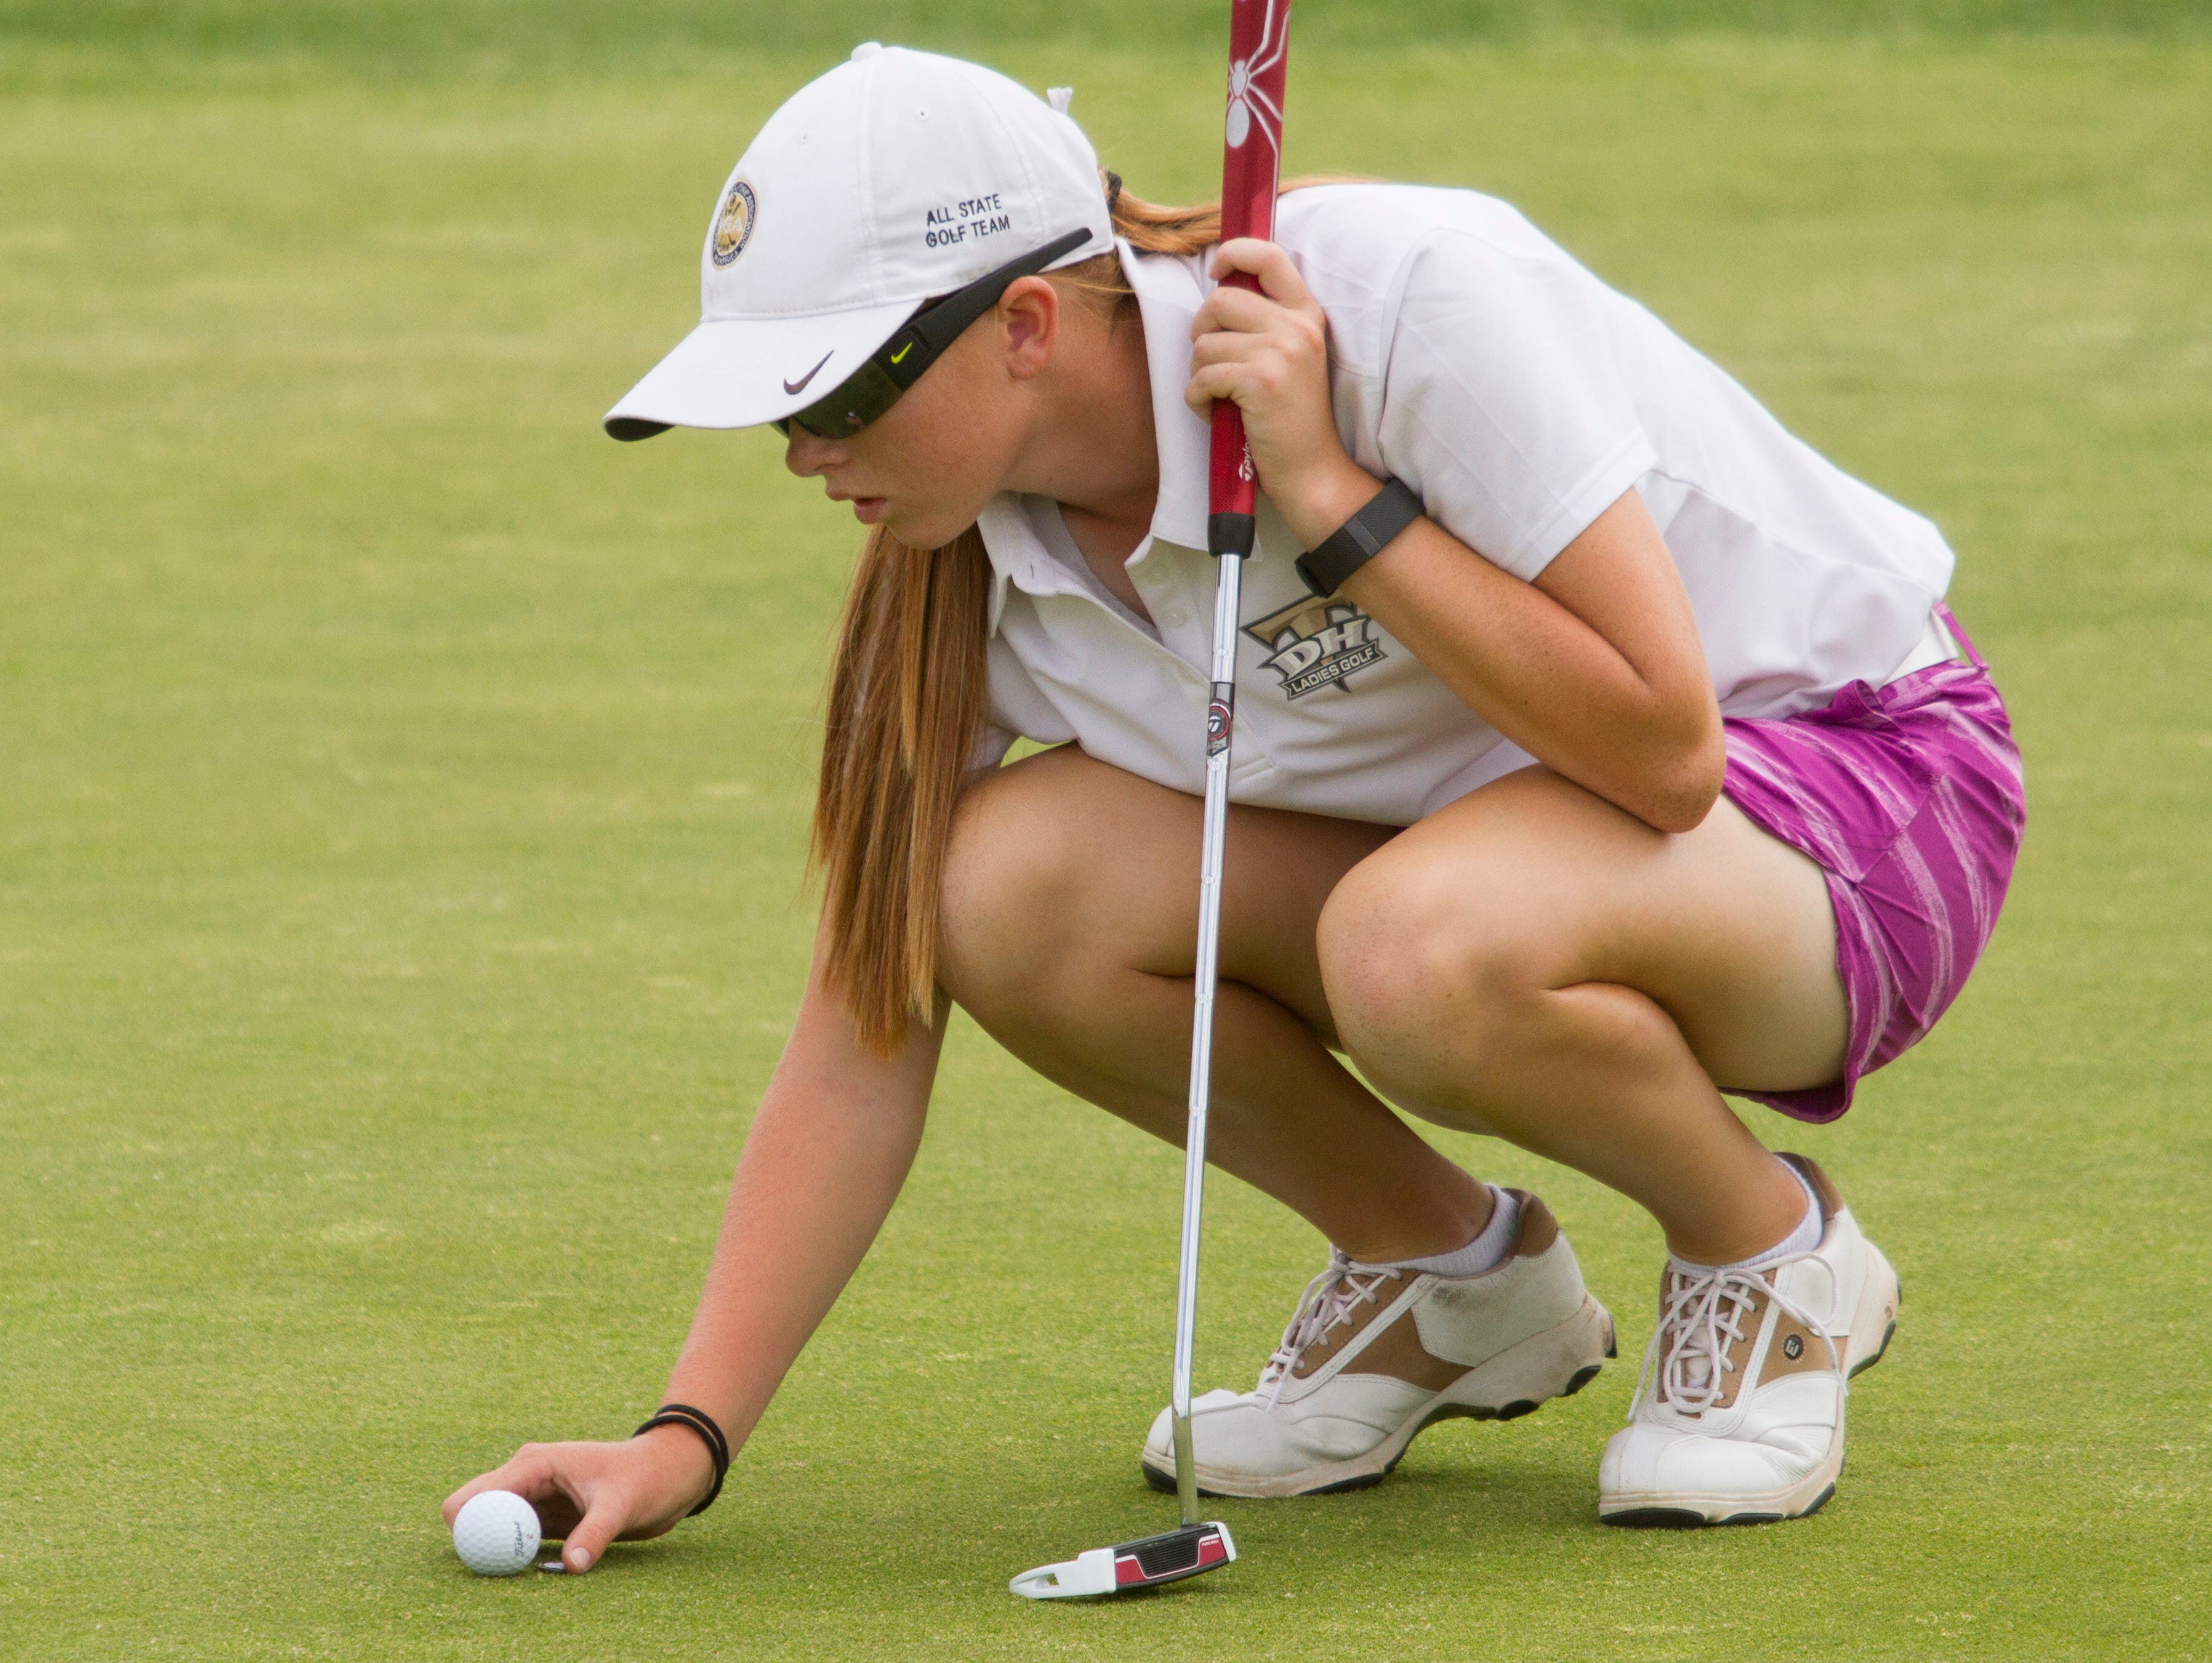 Desert Hills golfer Tori Thomas looks to make a putt at SunRiver Golf Club. The Thunder are looking to win its seventh consecutive state title this week at Soldier Hollow.